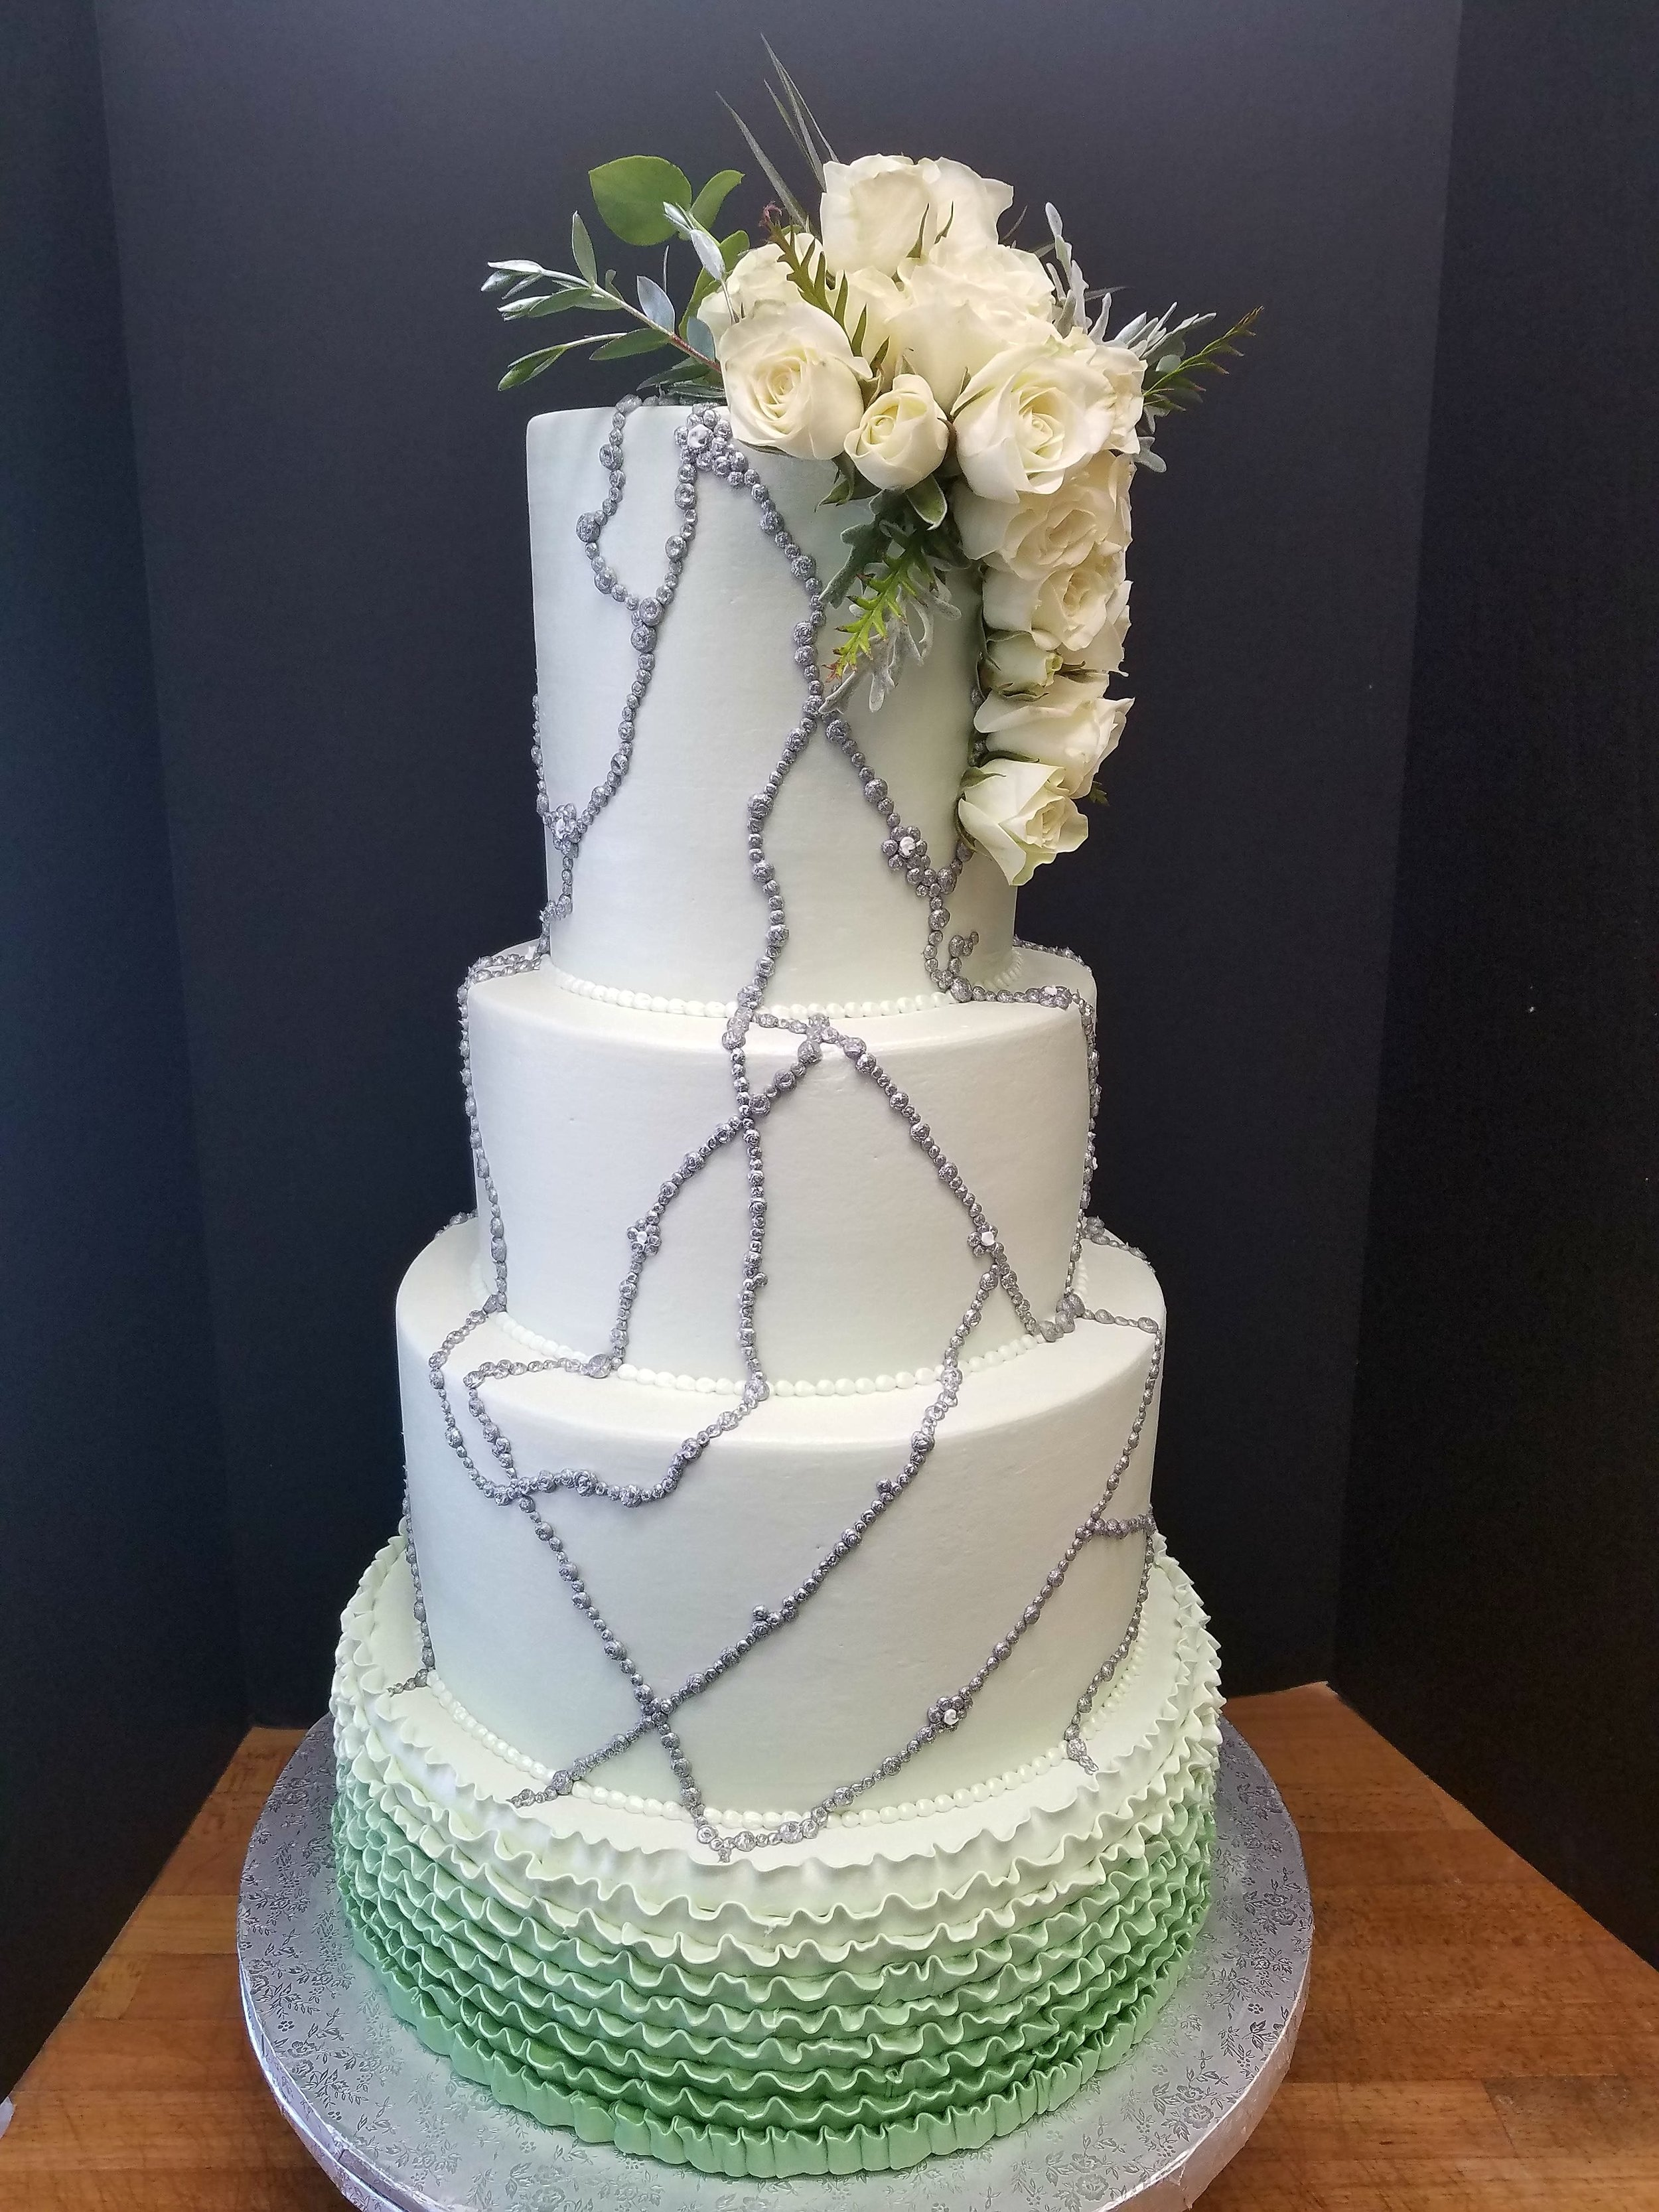 Ombre Green with Ruffles Wedding Cake